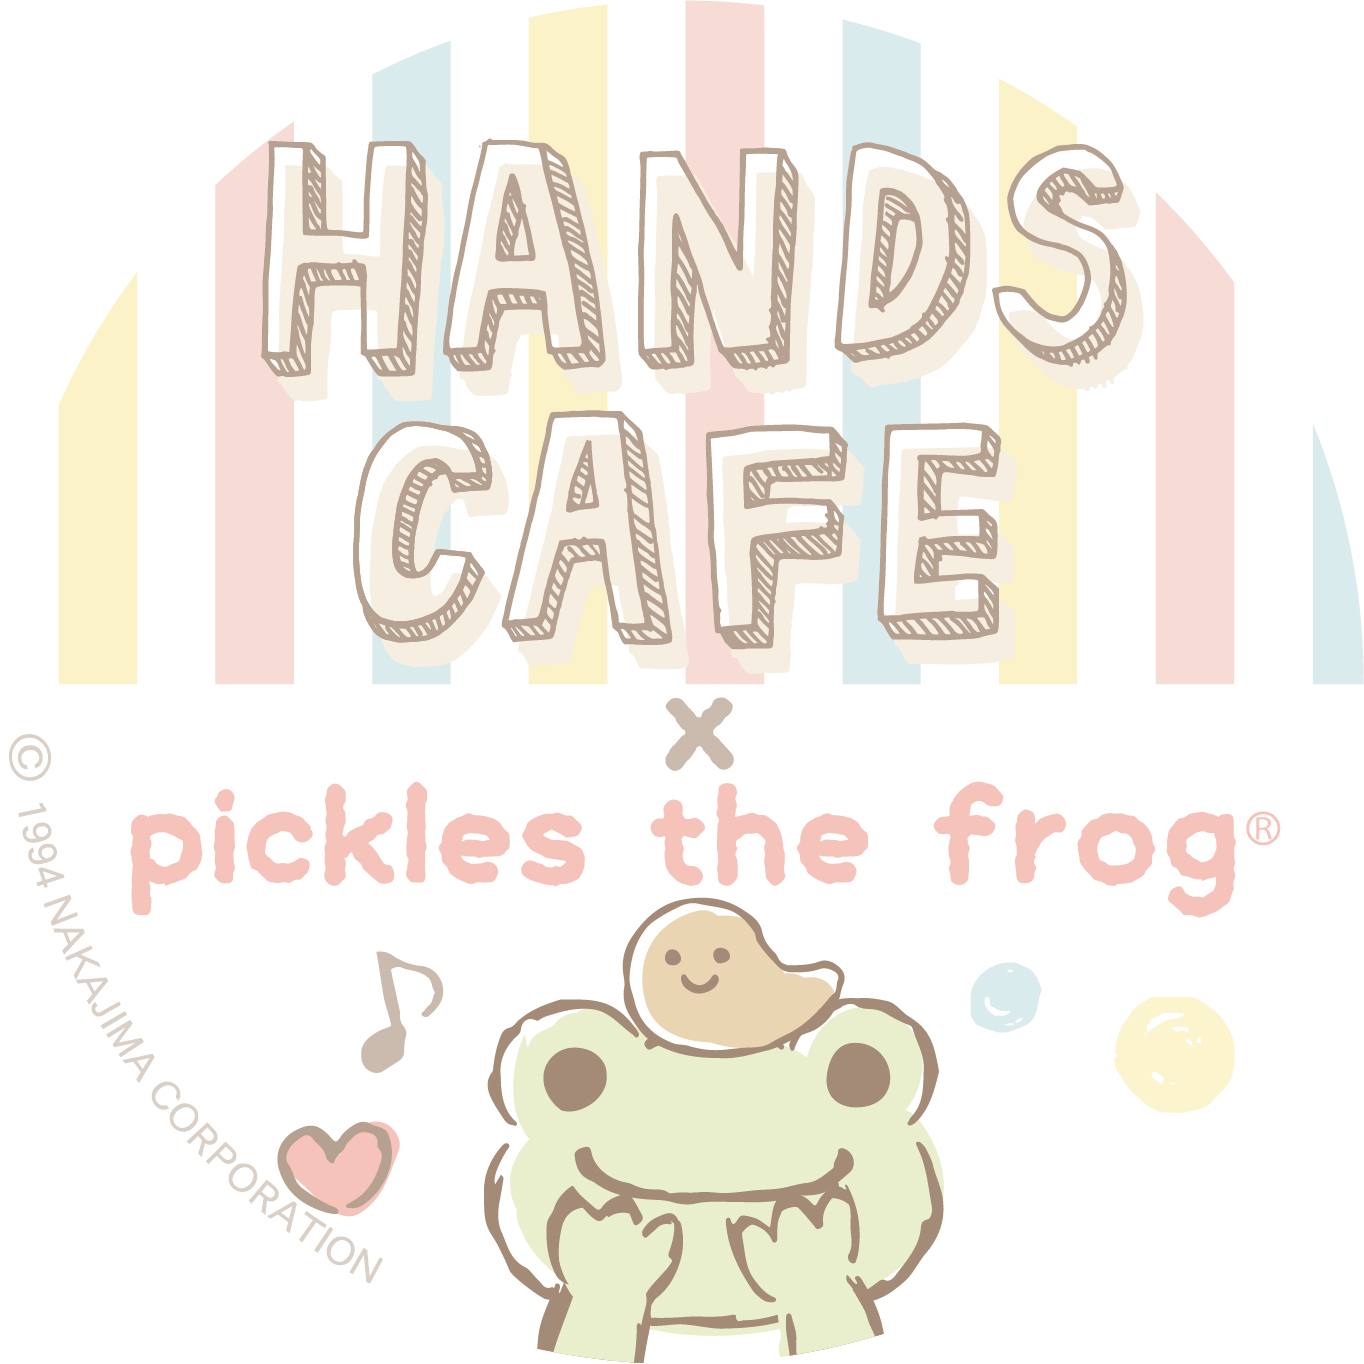 pickles-the-frog-hands-cafe08